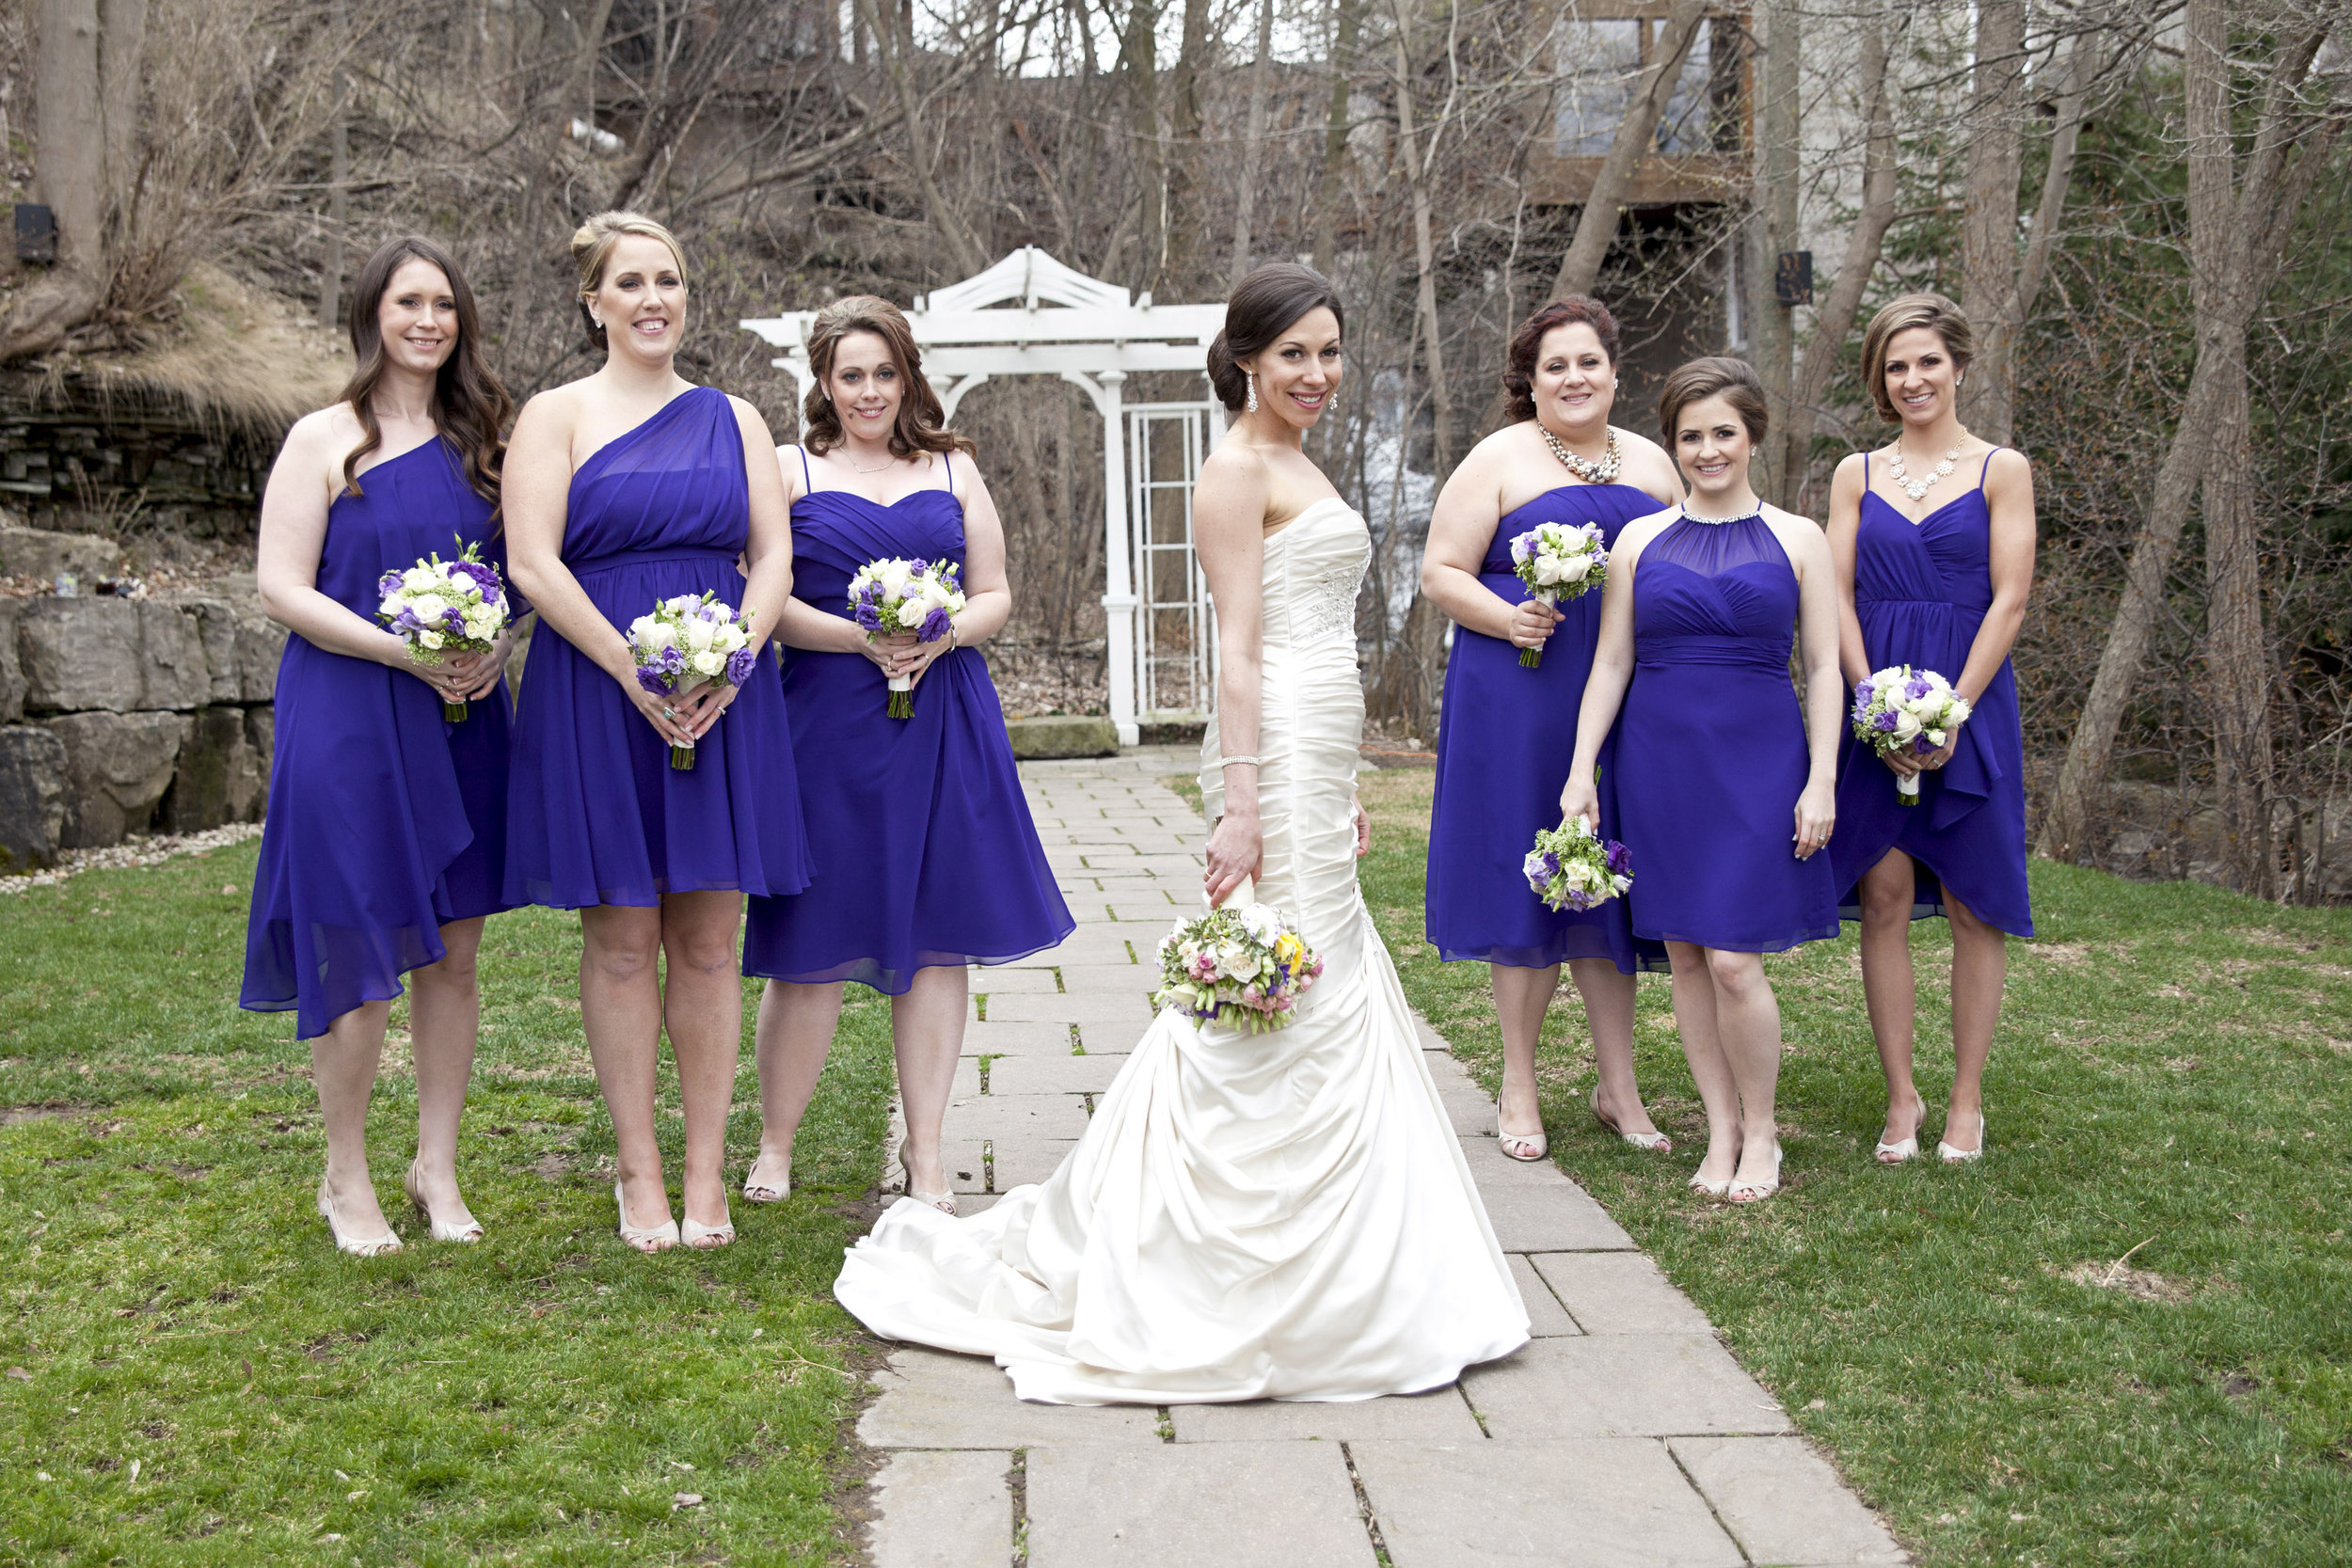 Bridesmaids wearing purple for spring wedding